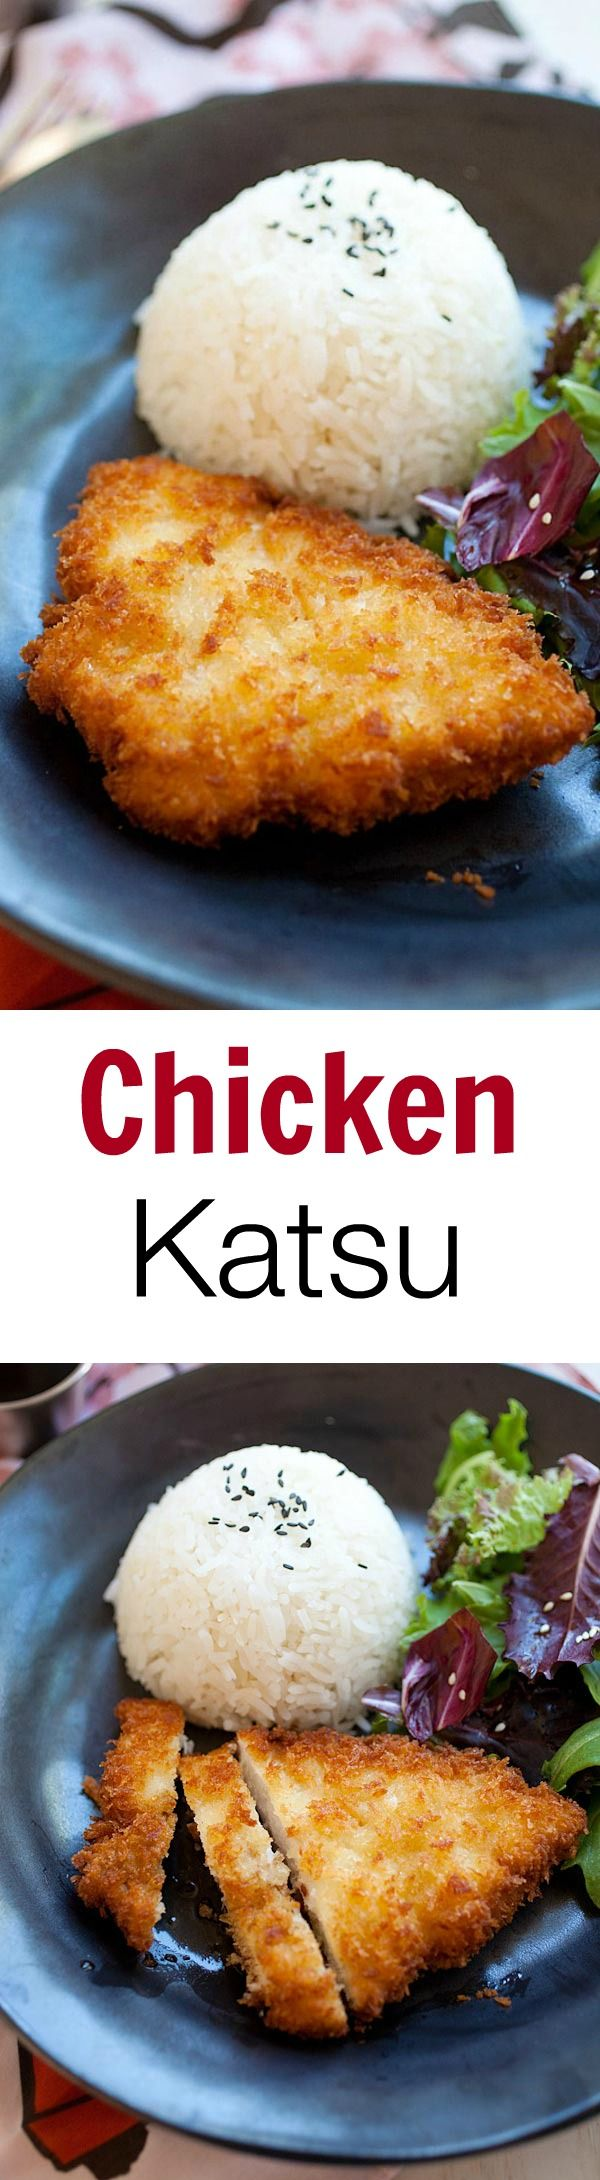 Japan - Chicken Katsu is Japanese fried chicken cutlet with bread crumbs/panko. Easy chicken katsu recipe, served with Tonkatsu sauce | rasamalaysia.com